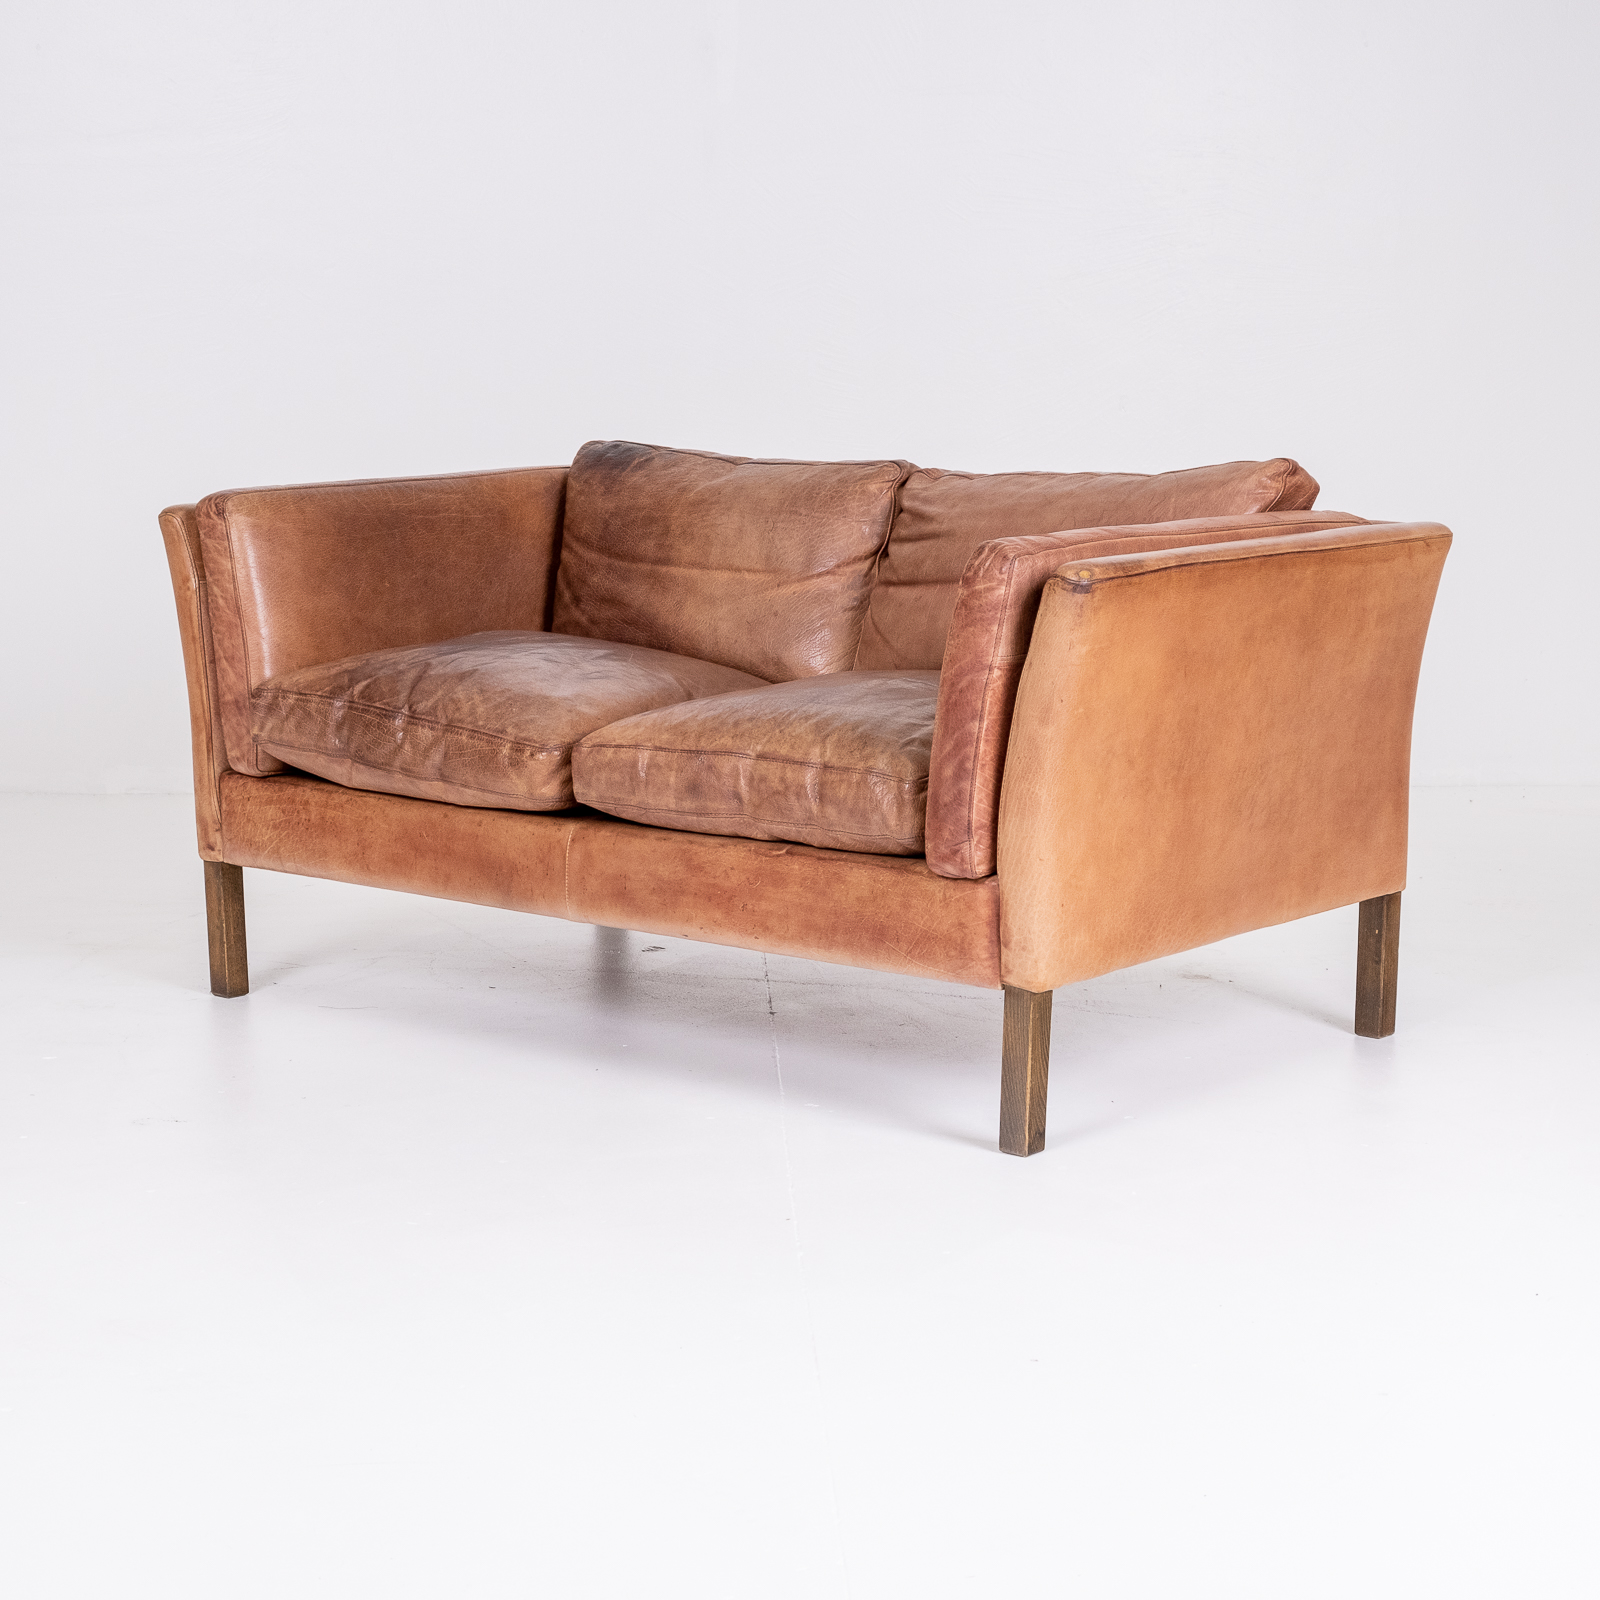 2 Seat Sofa By Stouby In Tan Leather, 1960s, Denmark